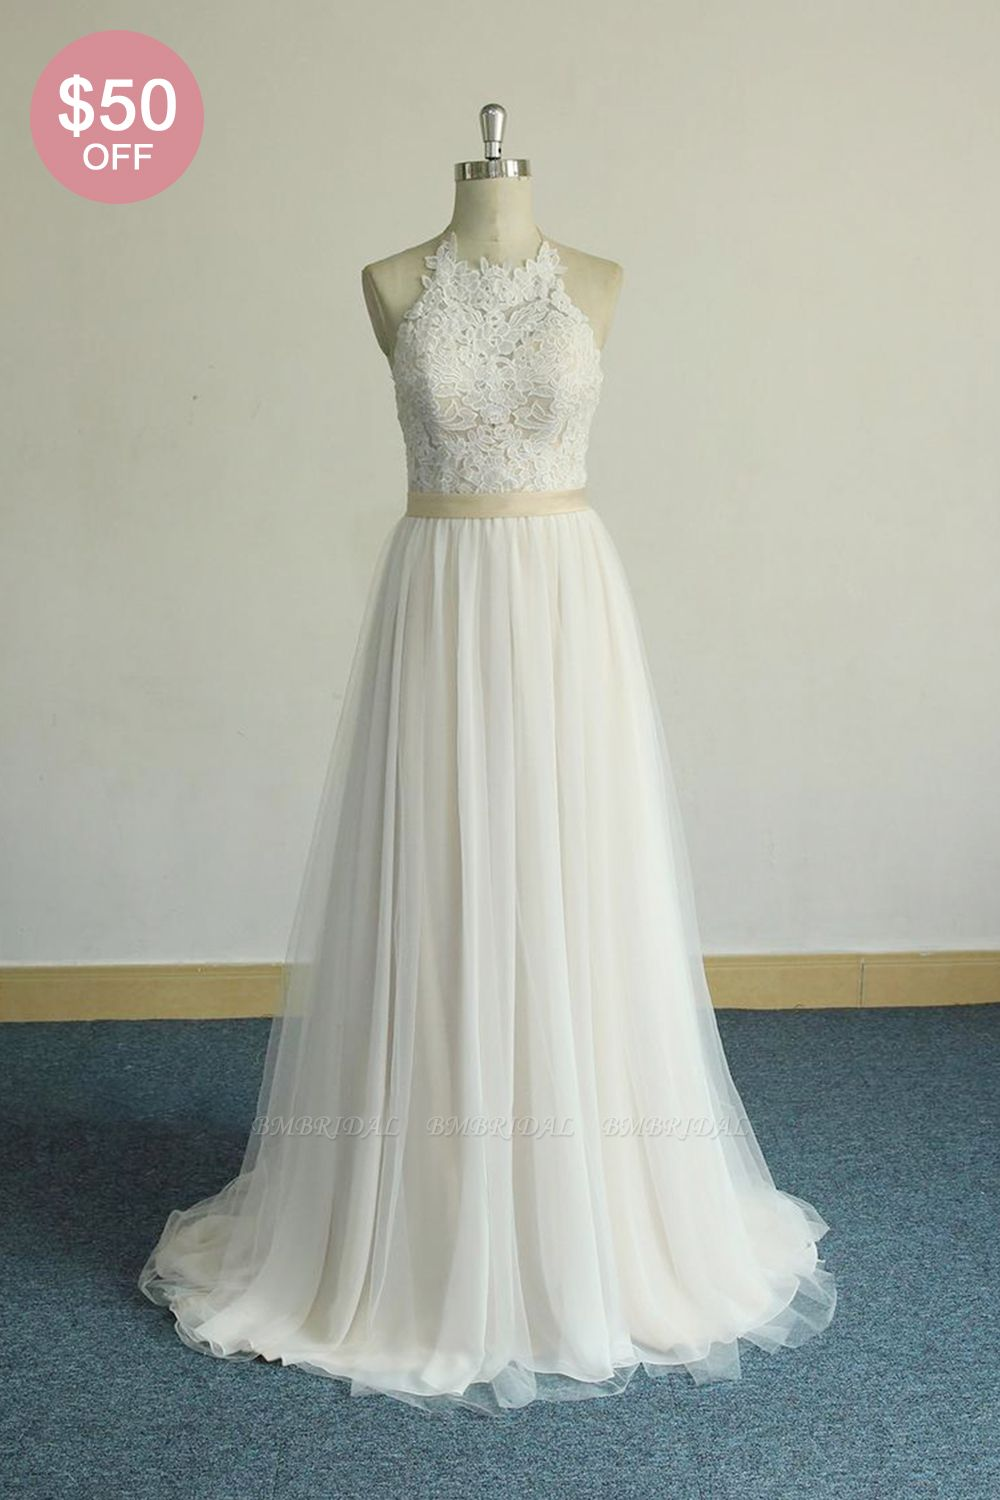 BMbridal Glamorous Halter Ivory A-line Wedding Dresses Lace Tulle Ruffles Bridal Gowns With Appliques Online